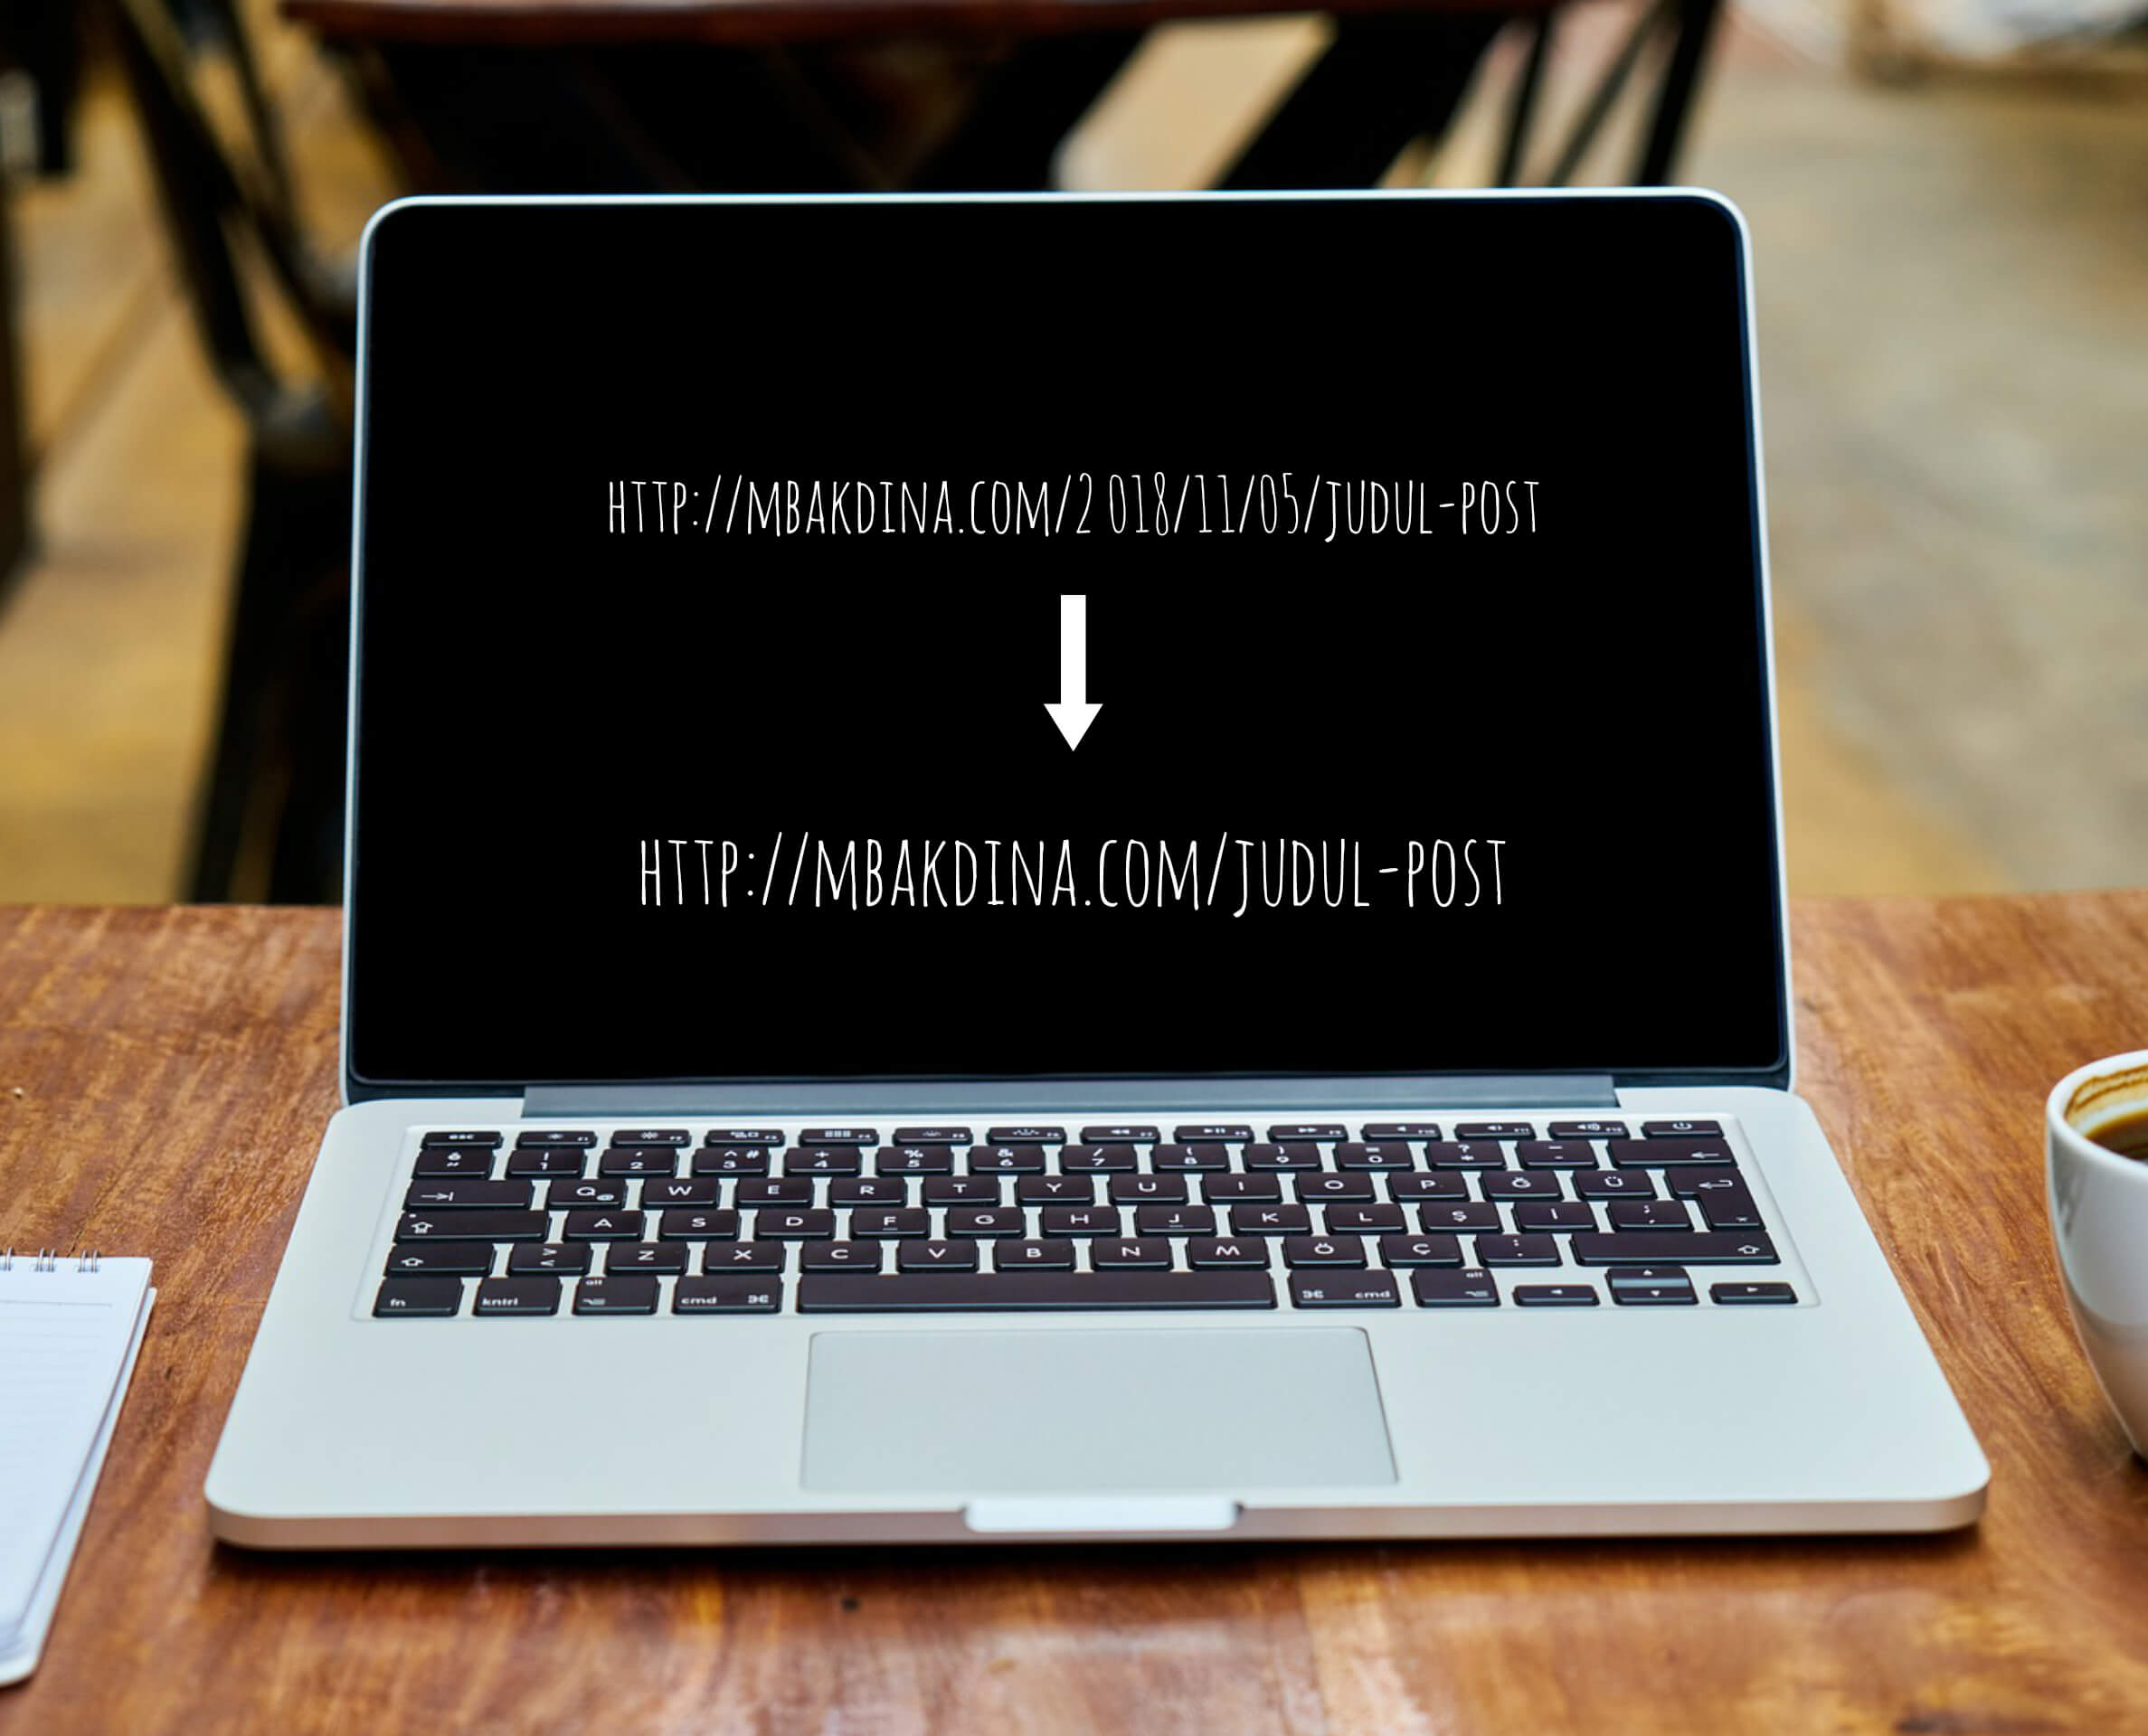 Cara Paling Mudah Redirect URL Lama ke WordPress Self Hosted (wordpress.org)